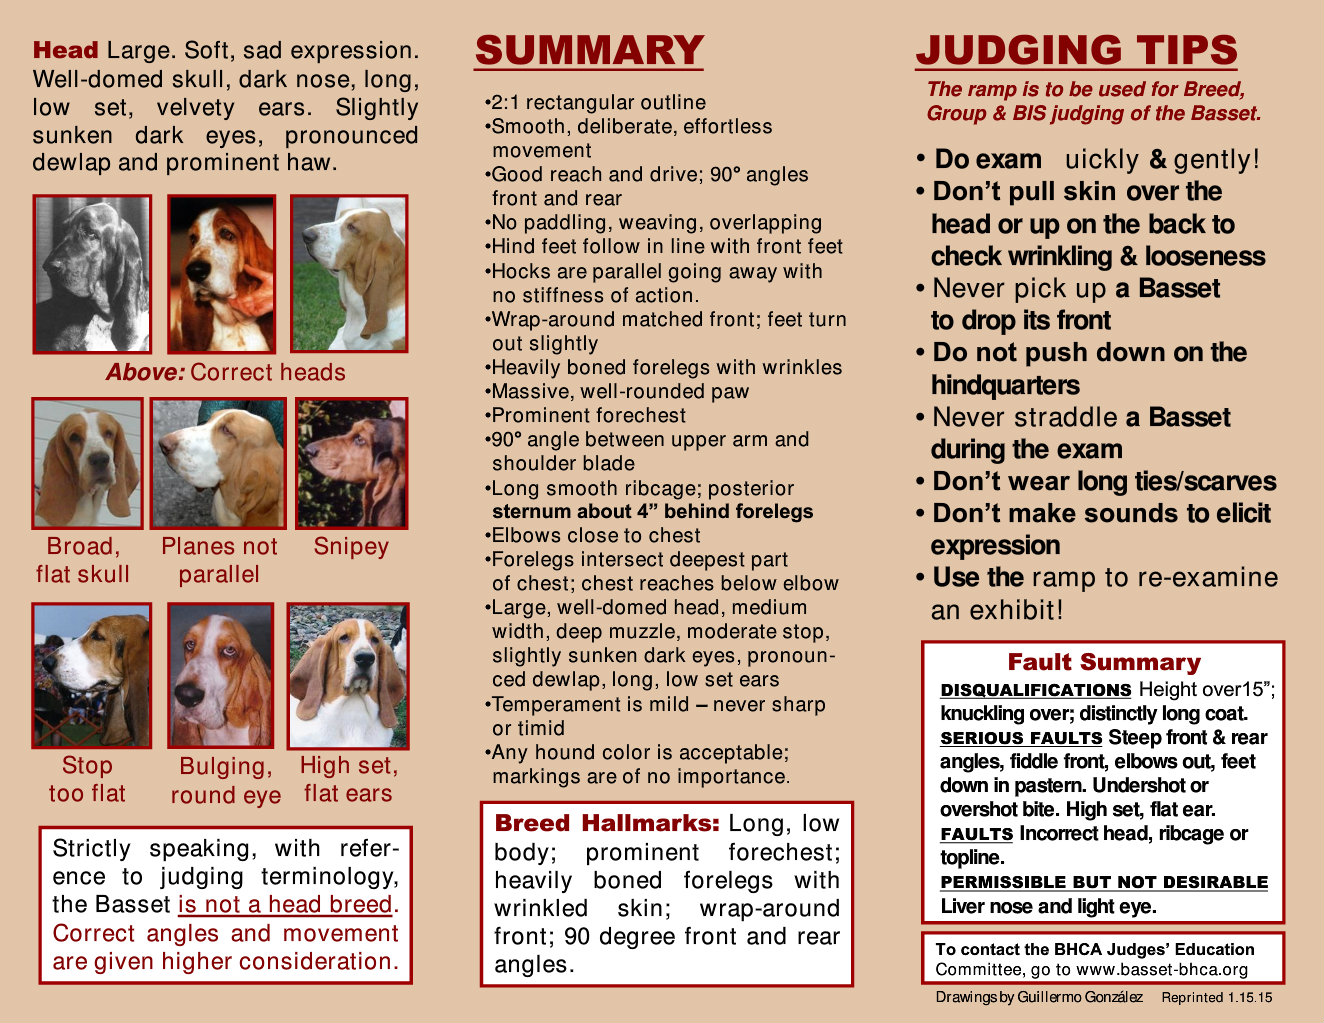 Pocket Guide to the Basset Hound Flipbook